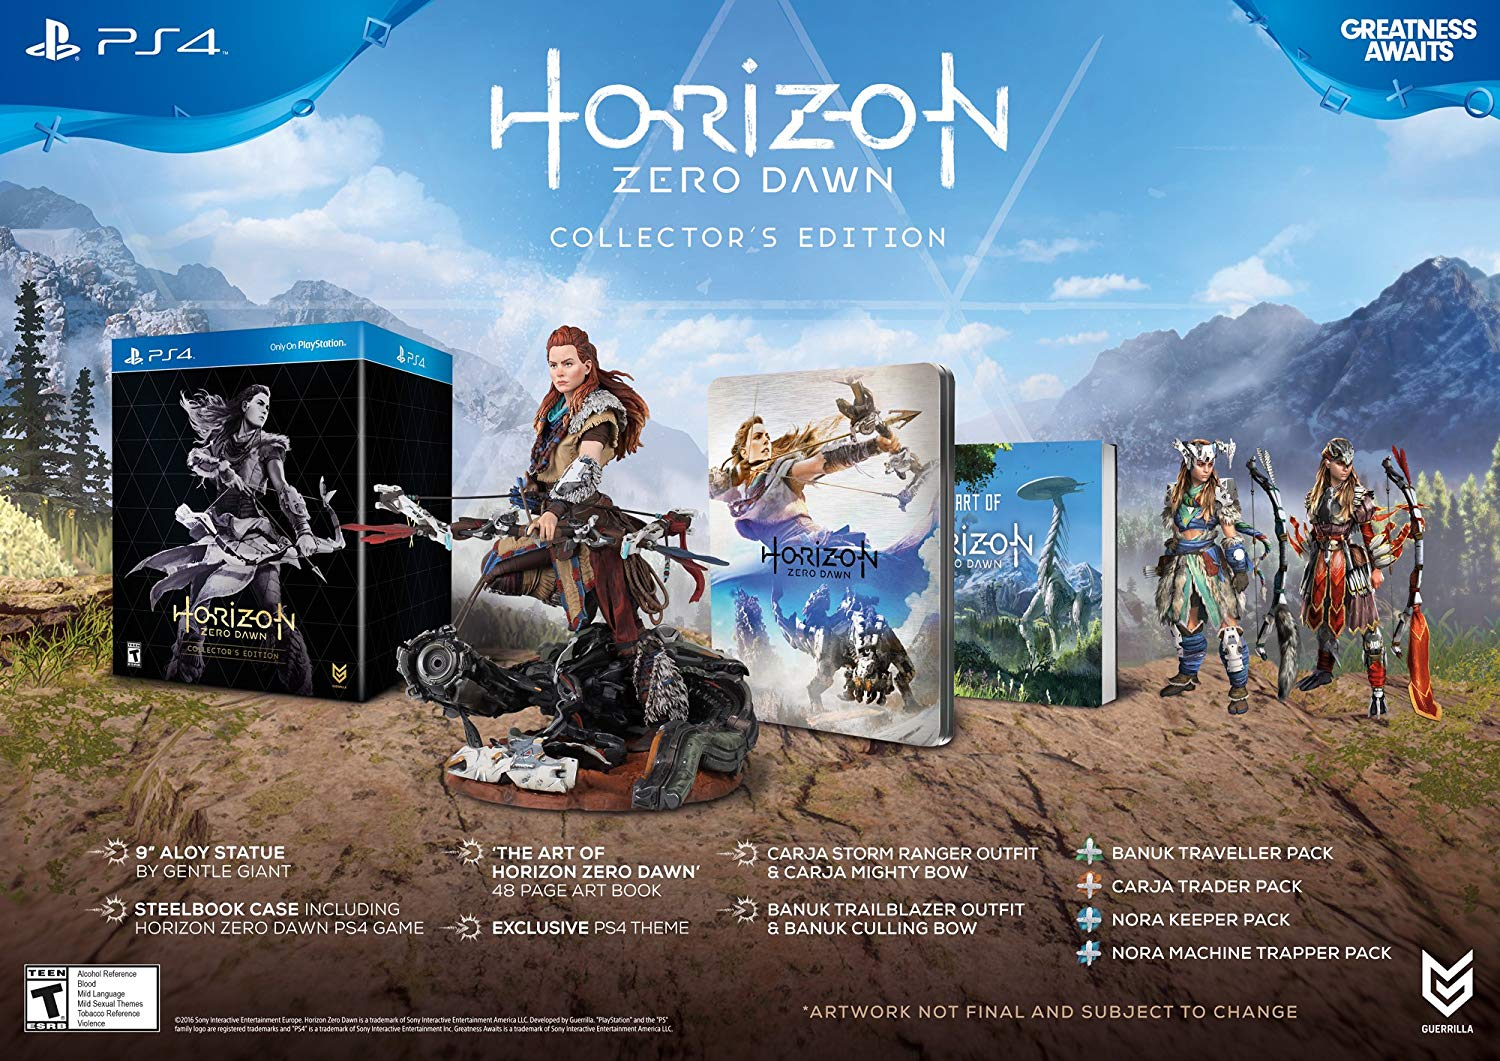 Horizon Zero Dawn - Collector's Edition $5,756.47